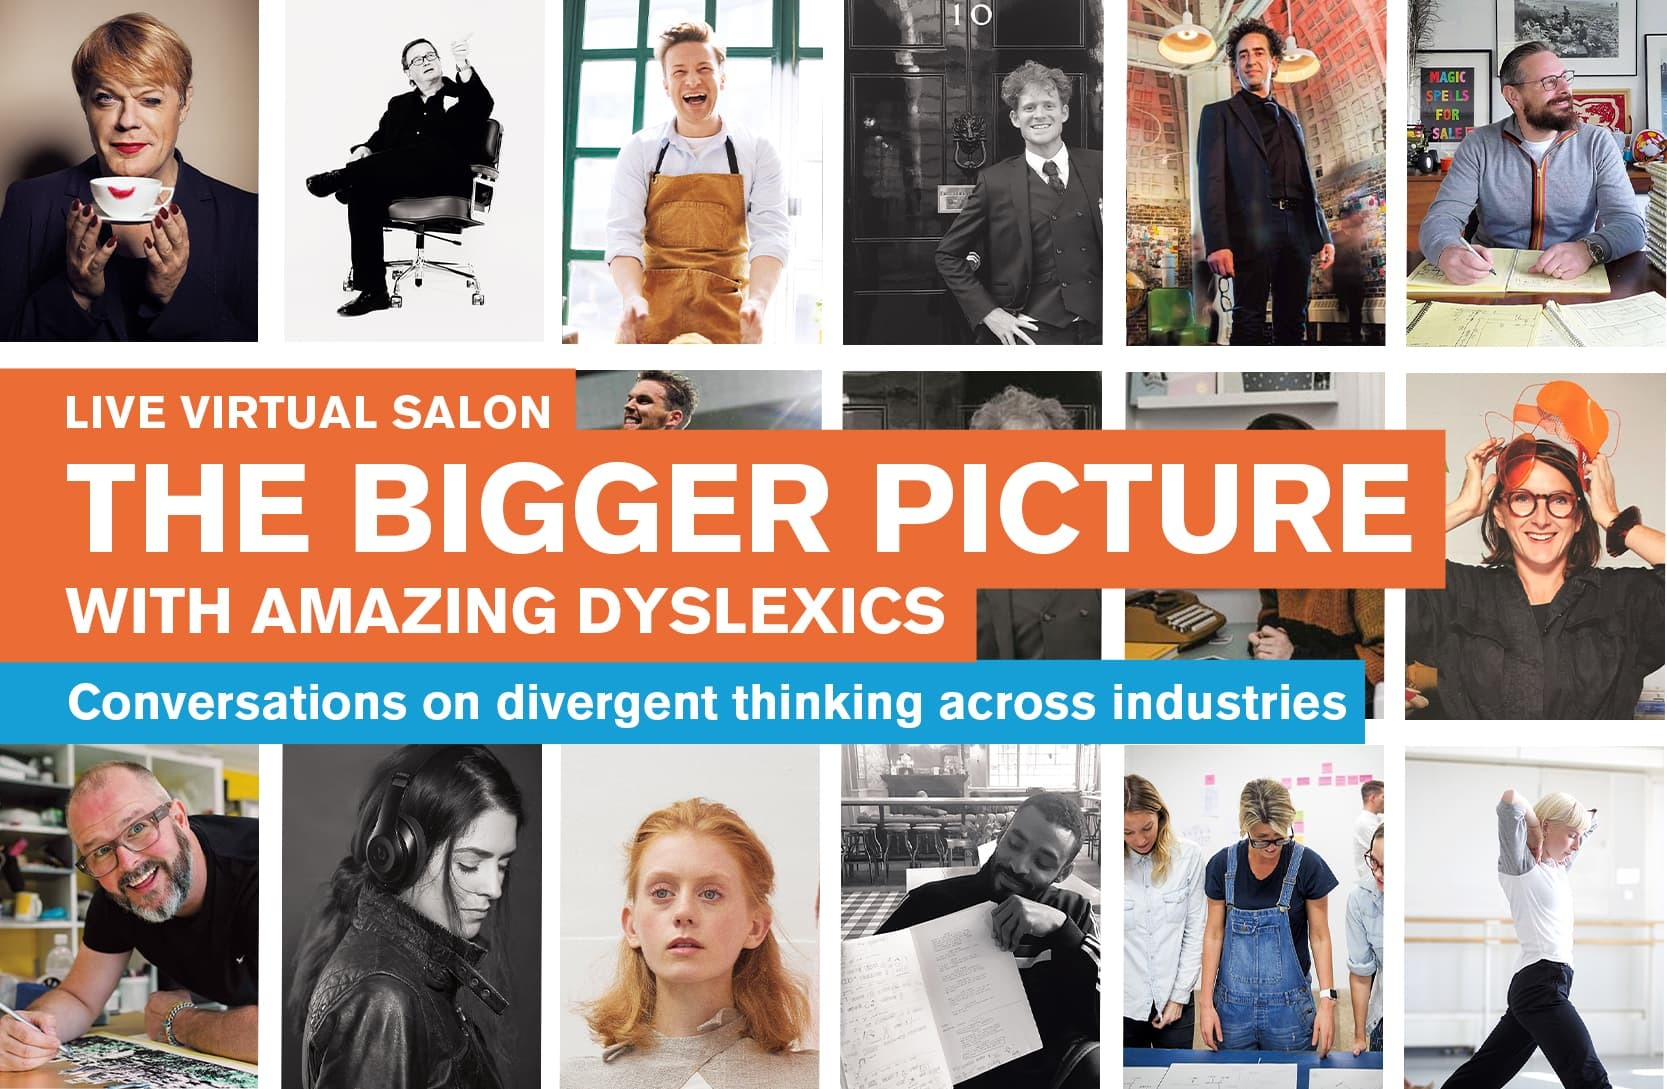 Banner for the Bigger Picture With Amazing Dyslexics, made up of 16 photos of Amazing Dyslexics taken from the book.